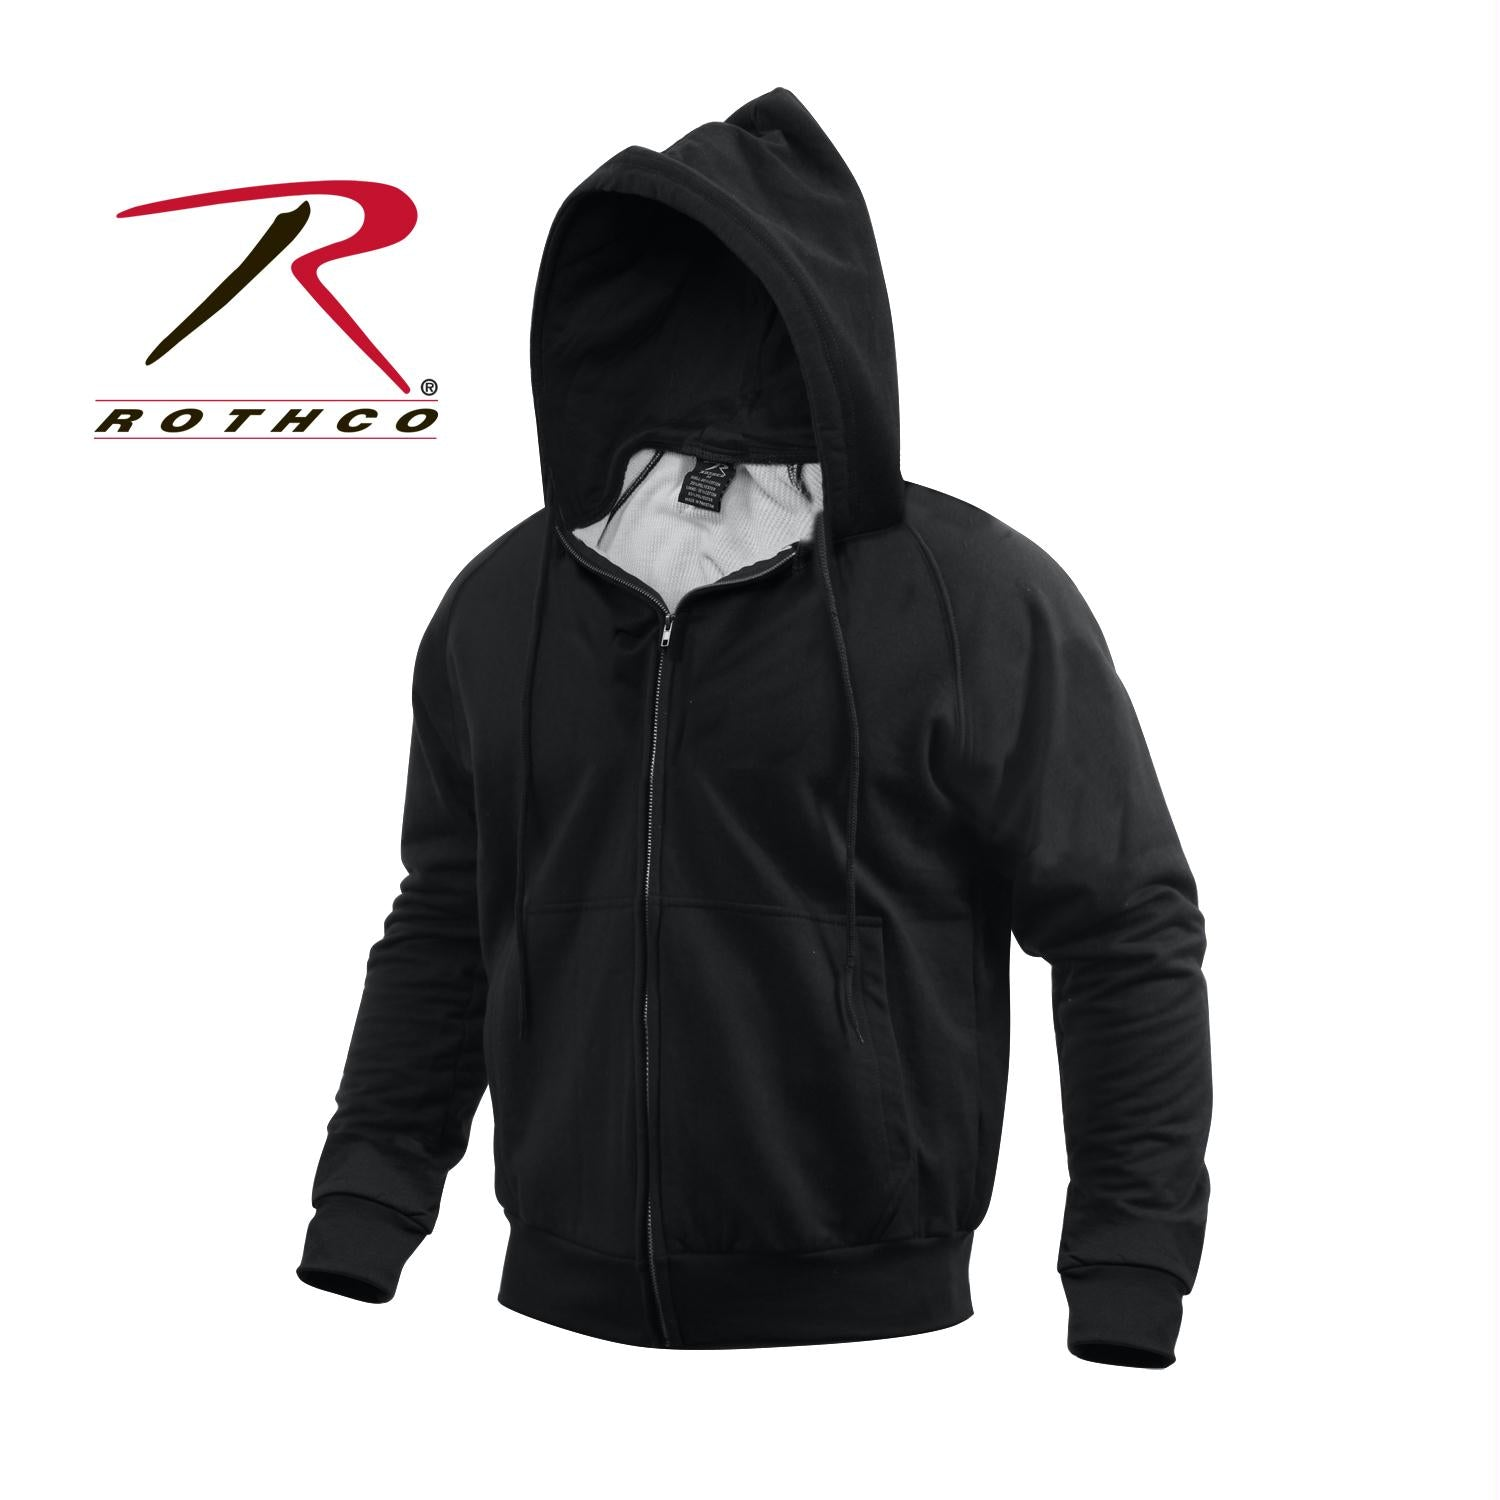 Rothco Thermal Lined Hooded Sweatshirt - Black / 3XL